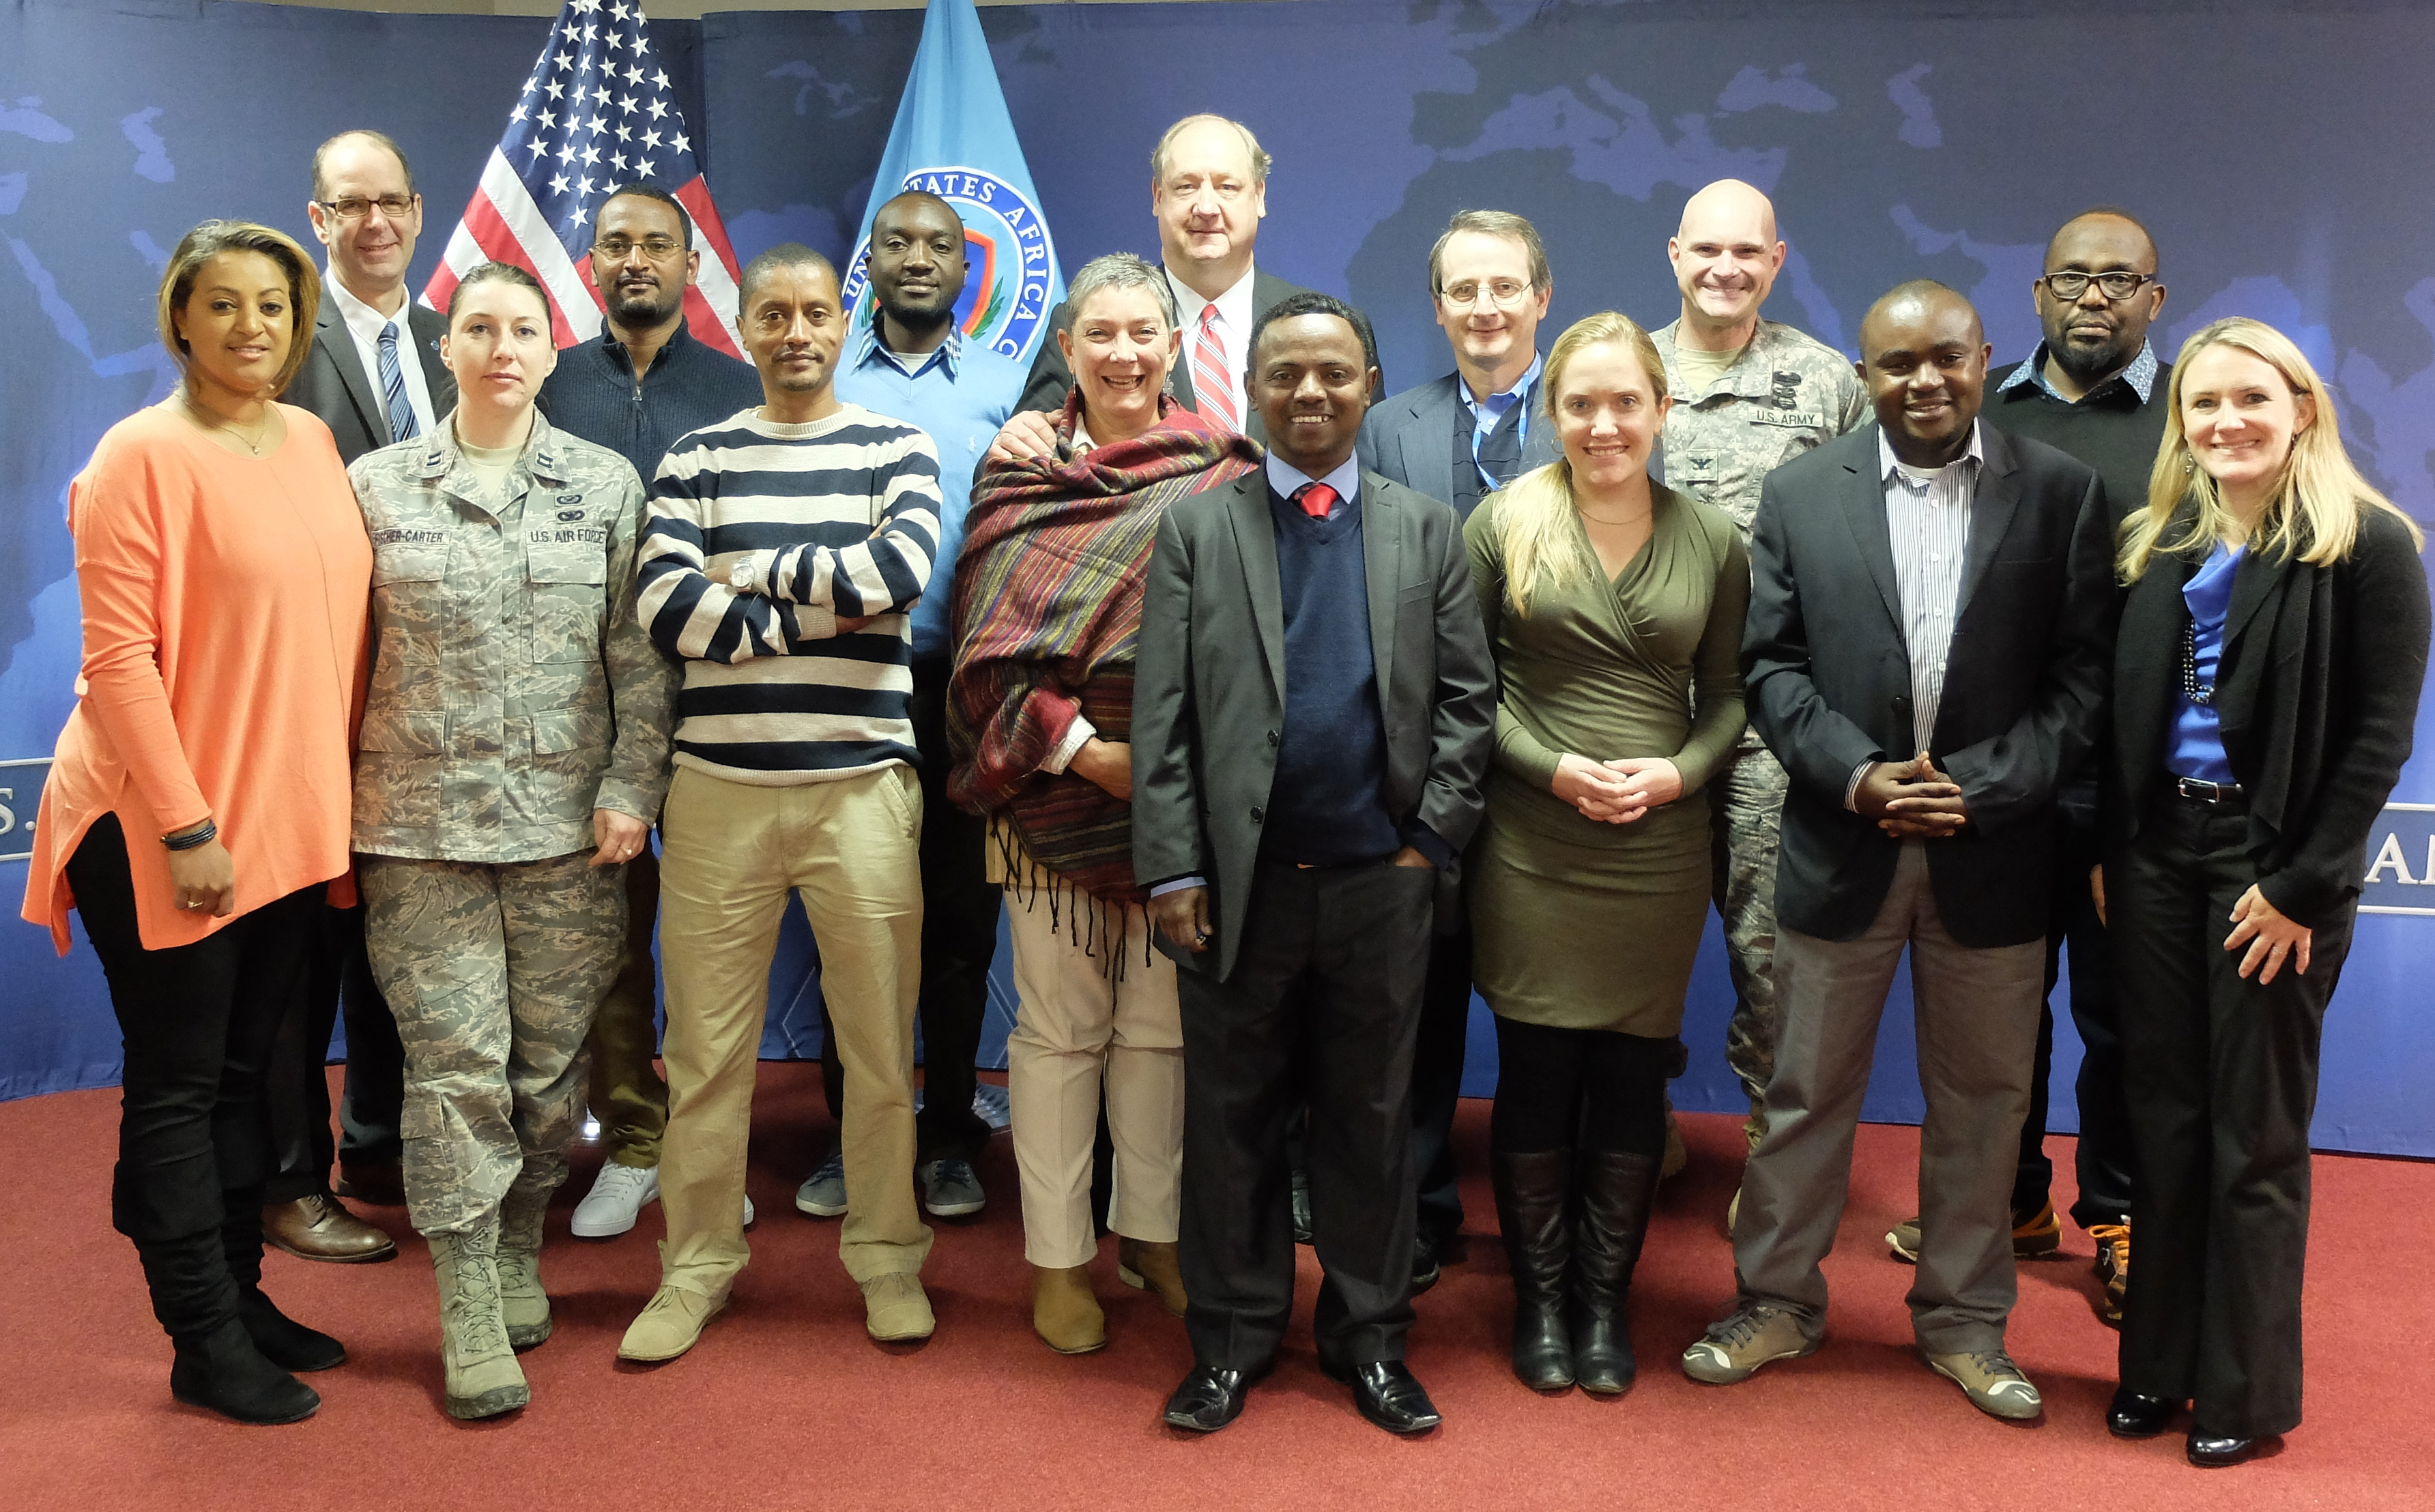 A delegation of African Union journalists spent the week of 9-12 Feb., 2015 visiting U.S. Africa Command to learn about the command's mission and programs. (U.S. AFRICOM photos by Brenda Law/Released)